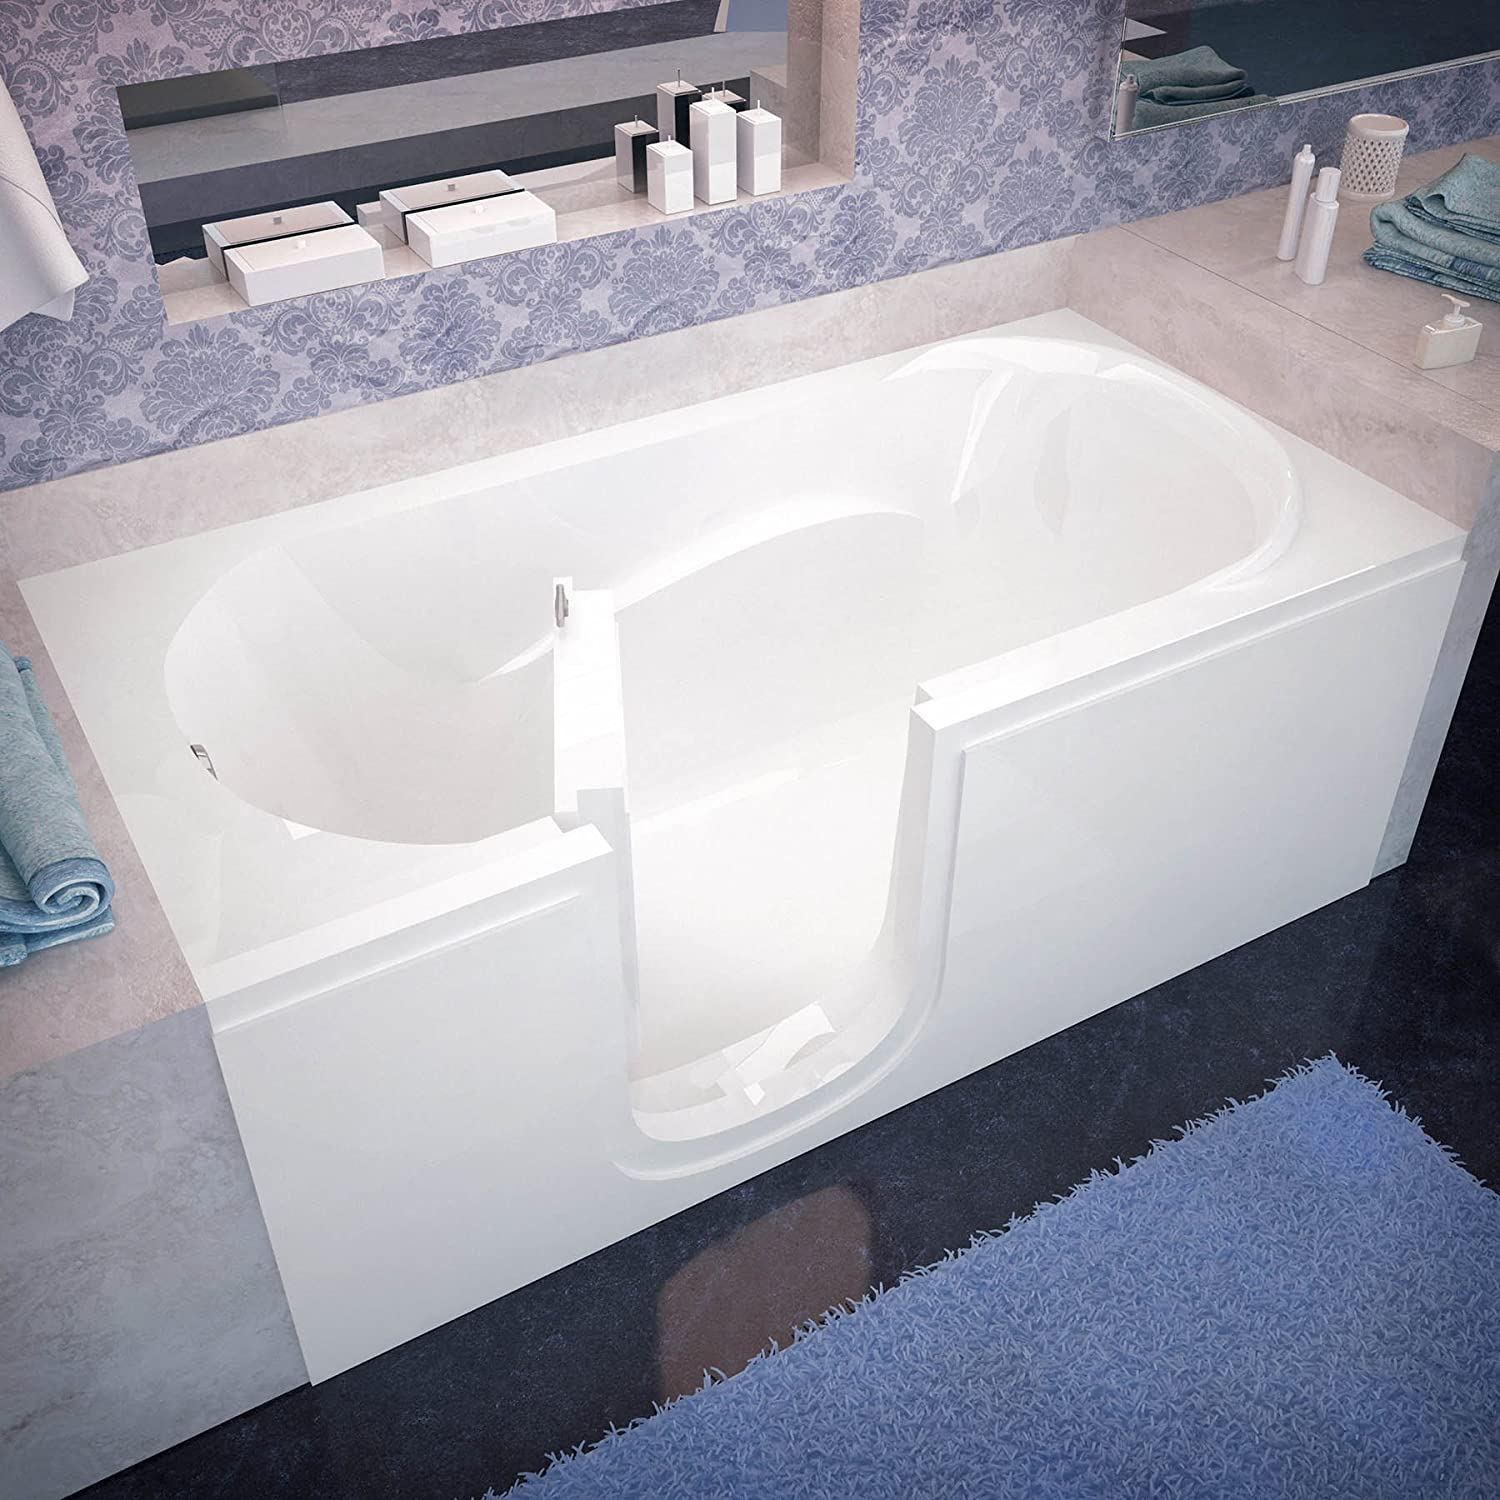 Spa World Venzi Vz3060silws Rectangular Soaking Walk-In Bathtub ...